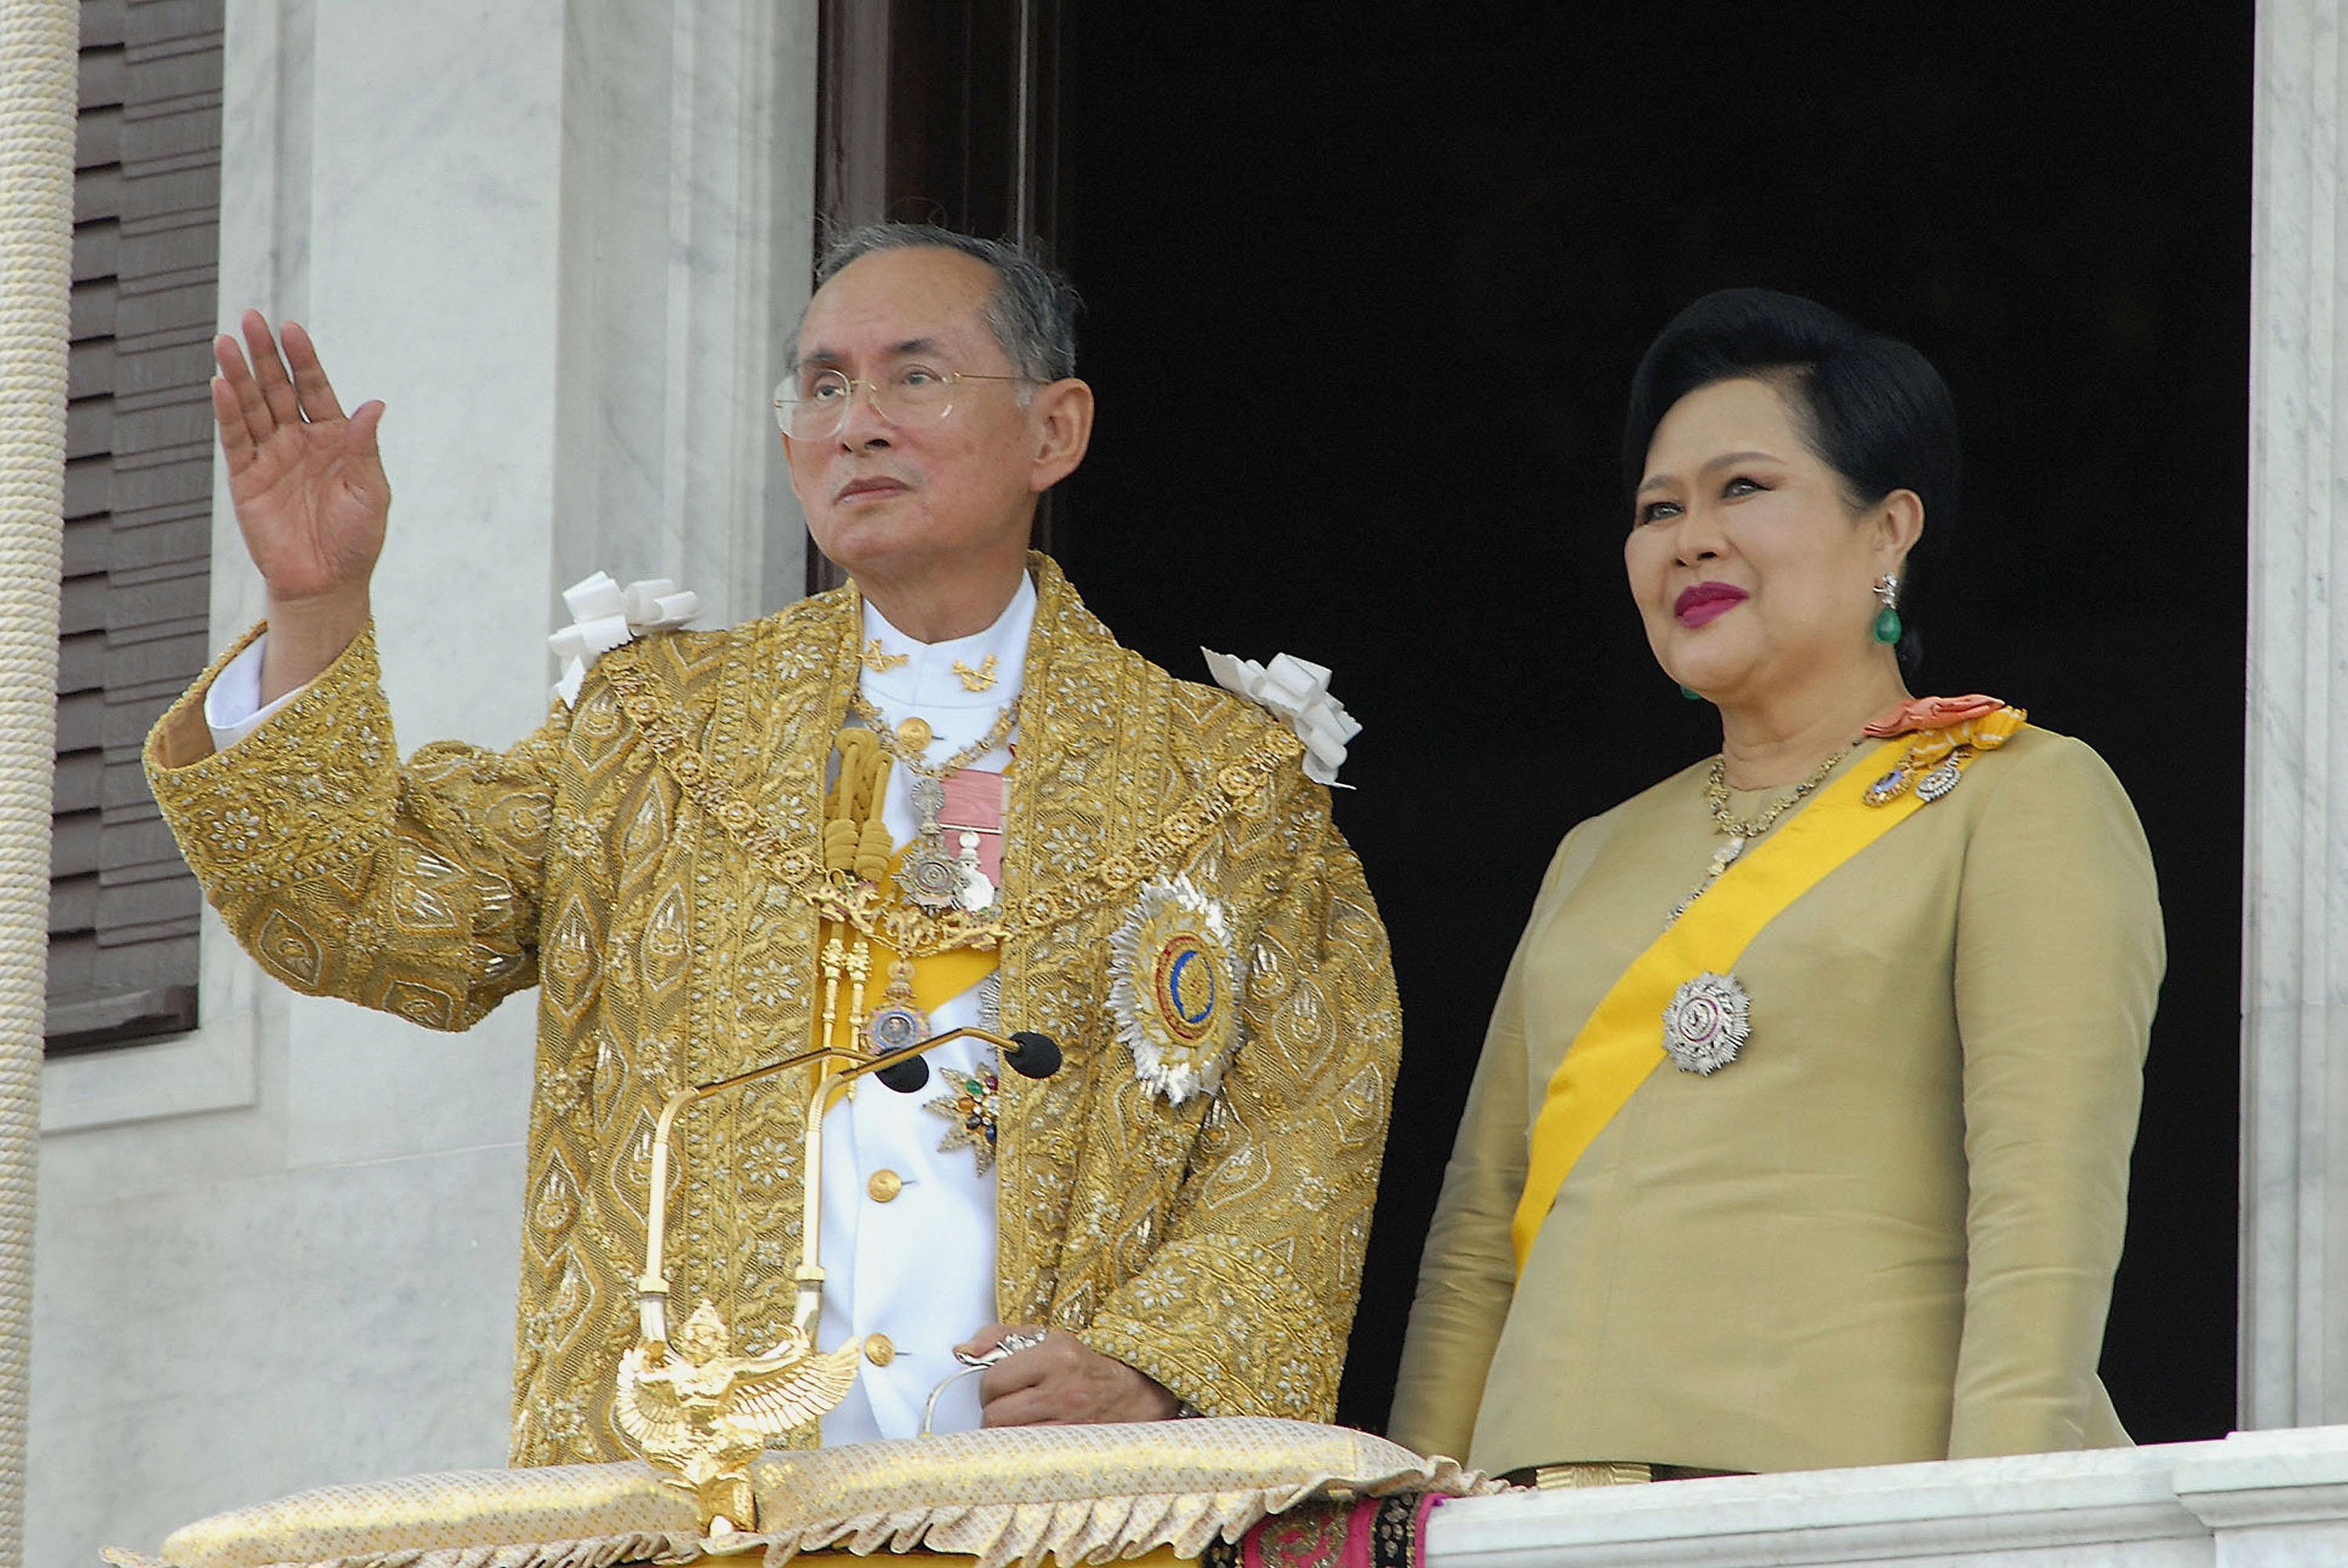 Thailand's King Bhumibol Adulyadej and Queen Sirikit wave to thousands of people waiting outside the Royal Plaza to pay tribute to him on June 9, 2006 in Bangkok, Thailand, as the country began a five-day celebration to mark the 60th anniversary of his accession to the throne.